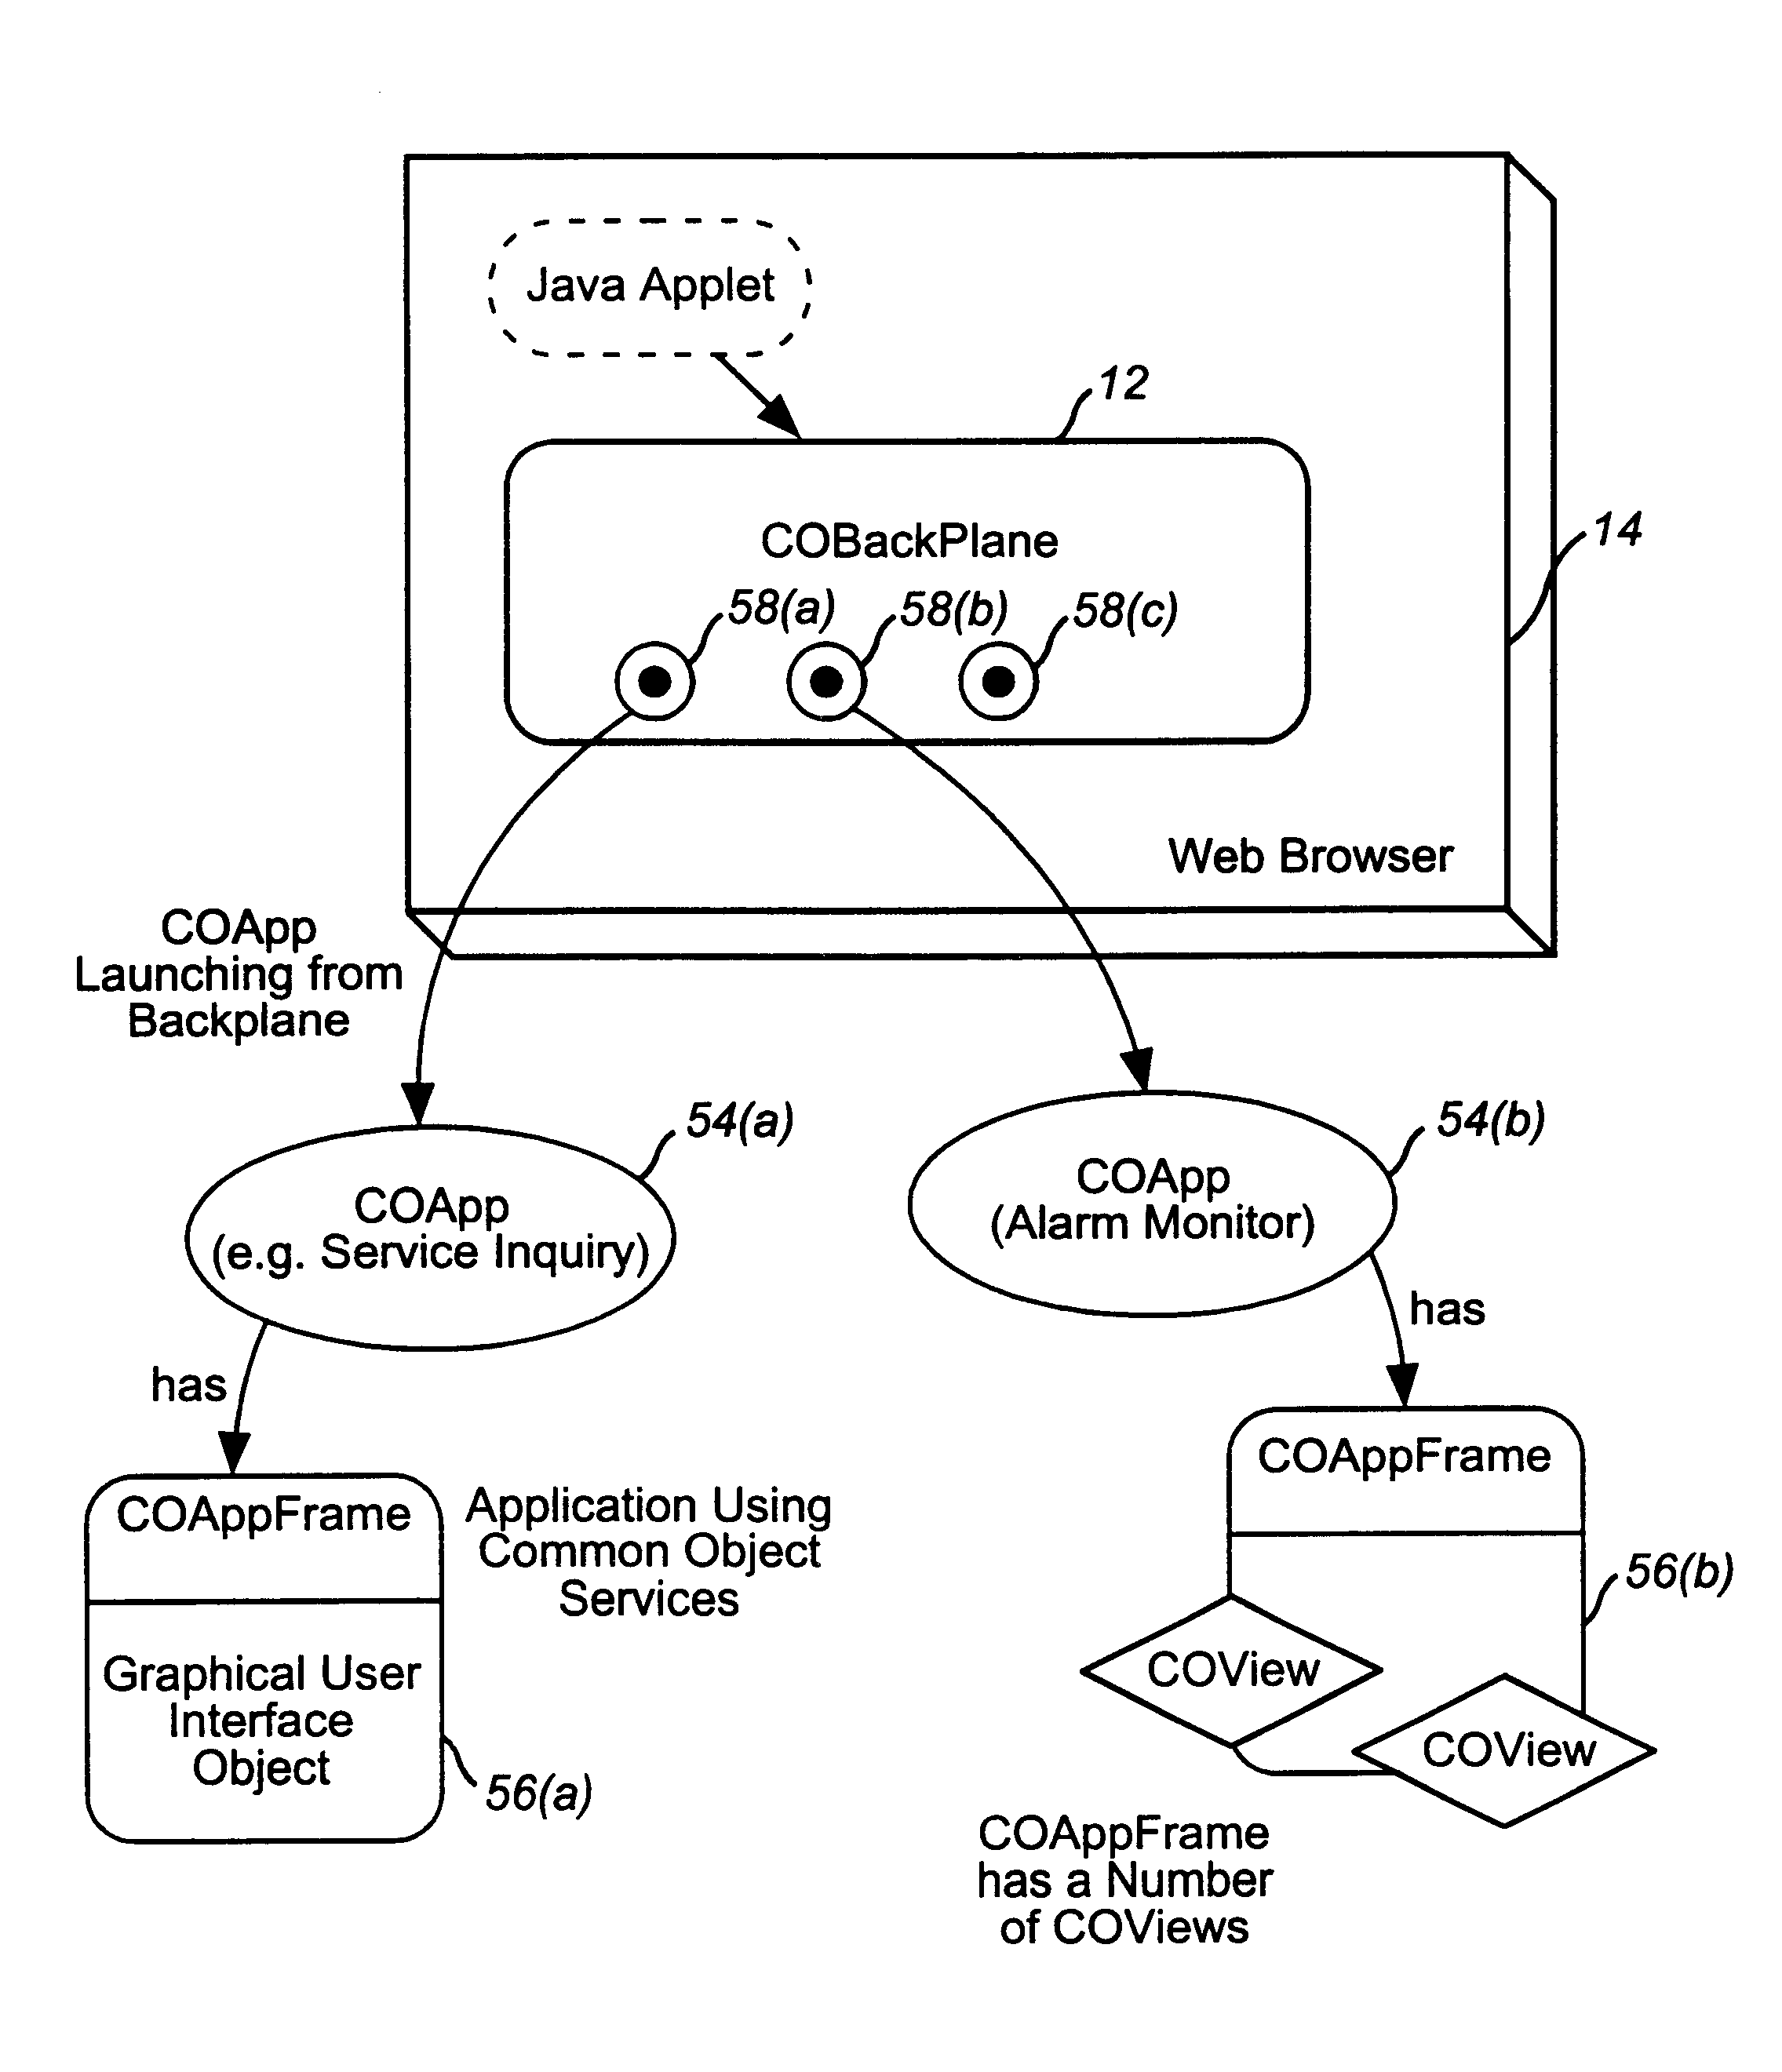 Us6606708b1 secure server architecture for web based data us6606708b1 secure server architecture for web based data management google patents asfbconference2016 Gallery